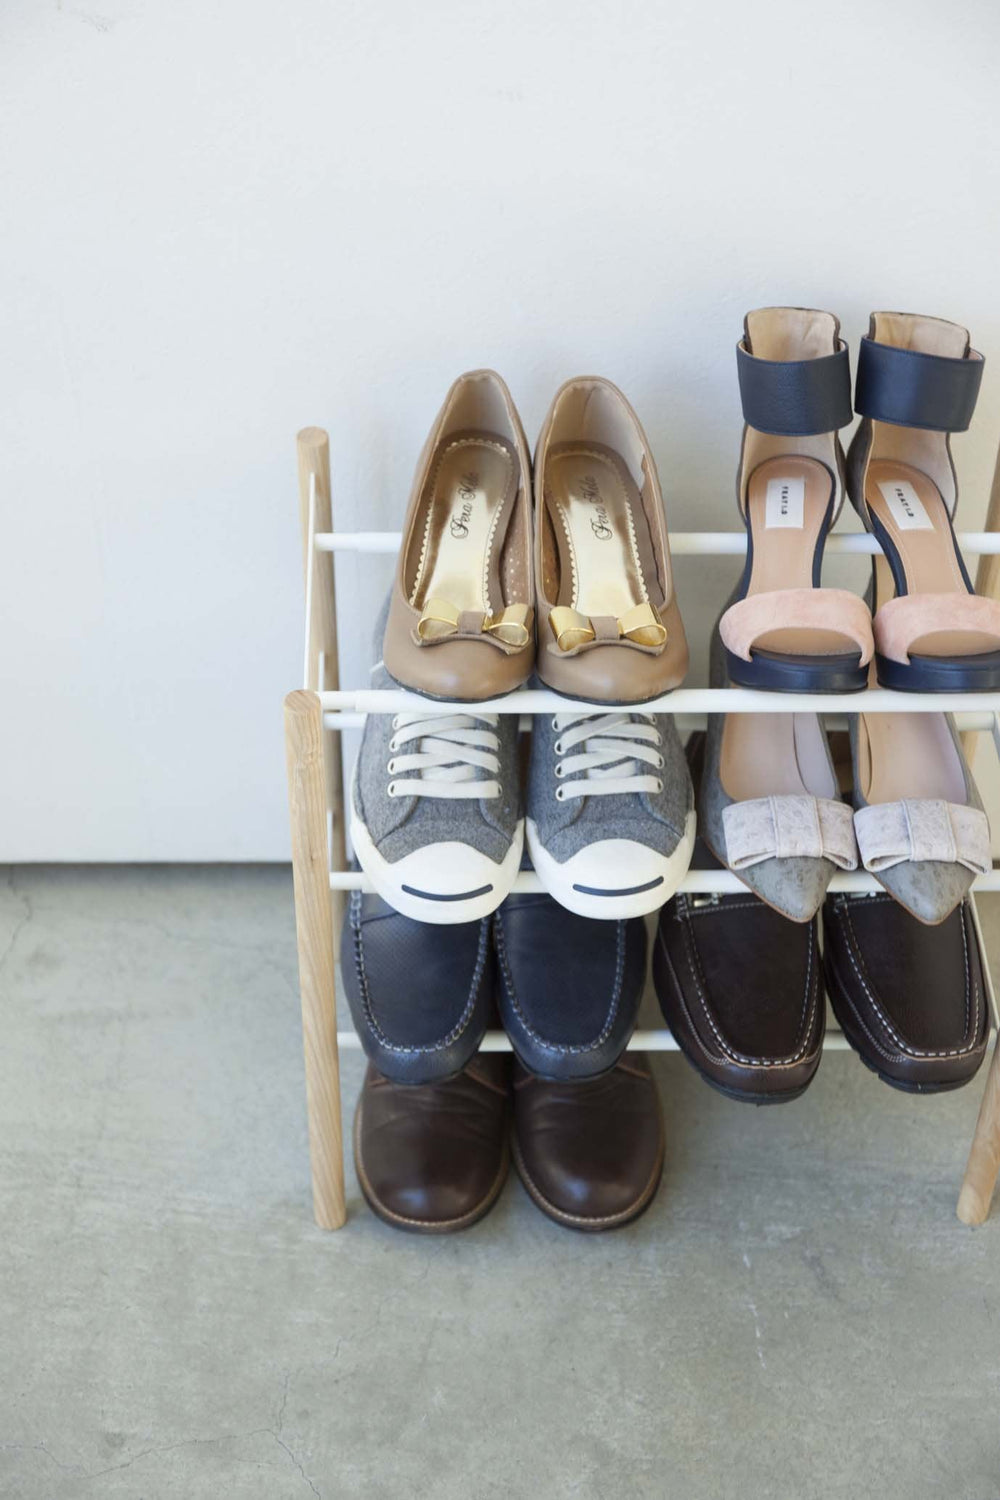 Yamazaki's three-level shoe rack filled with shoes, seen from the front.